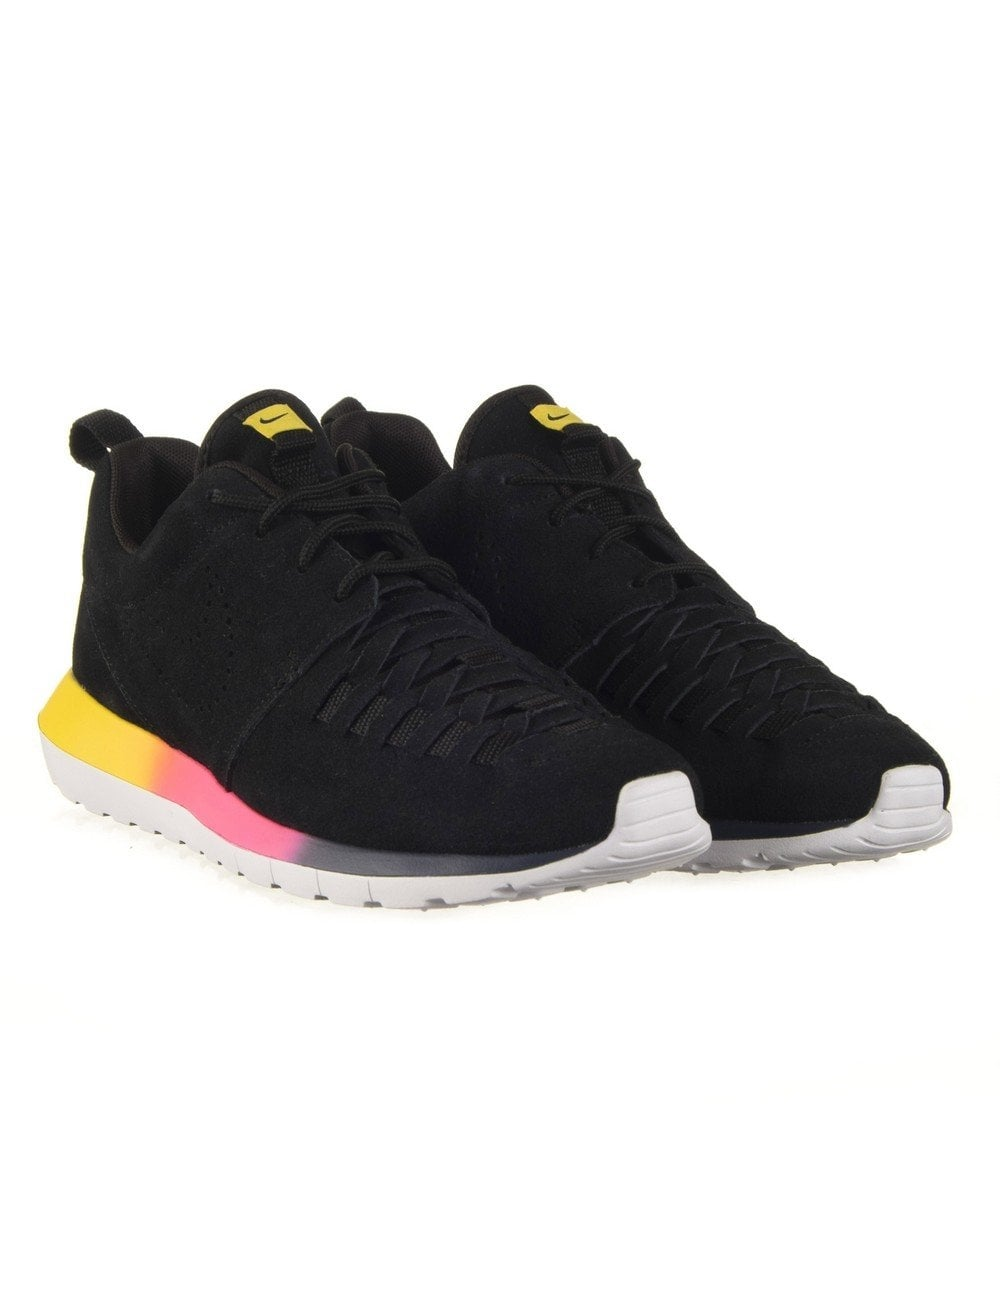 3b2ab63e484b8 Nike Roshe Run NM Woven SD - Black Tour Yellow - Footwear from Fat ...